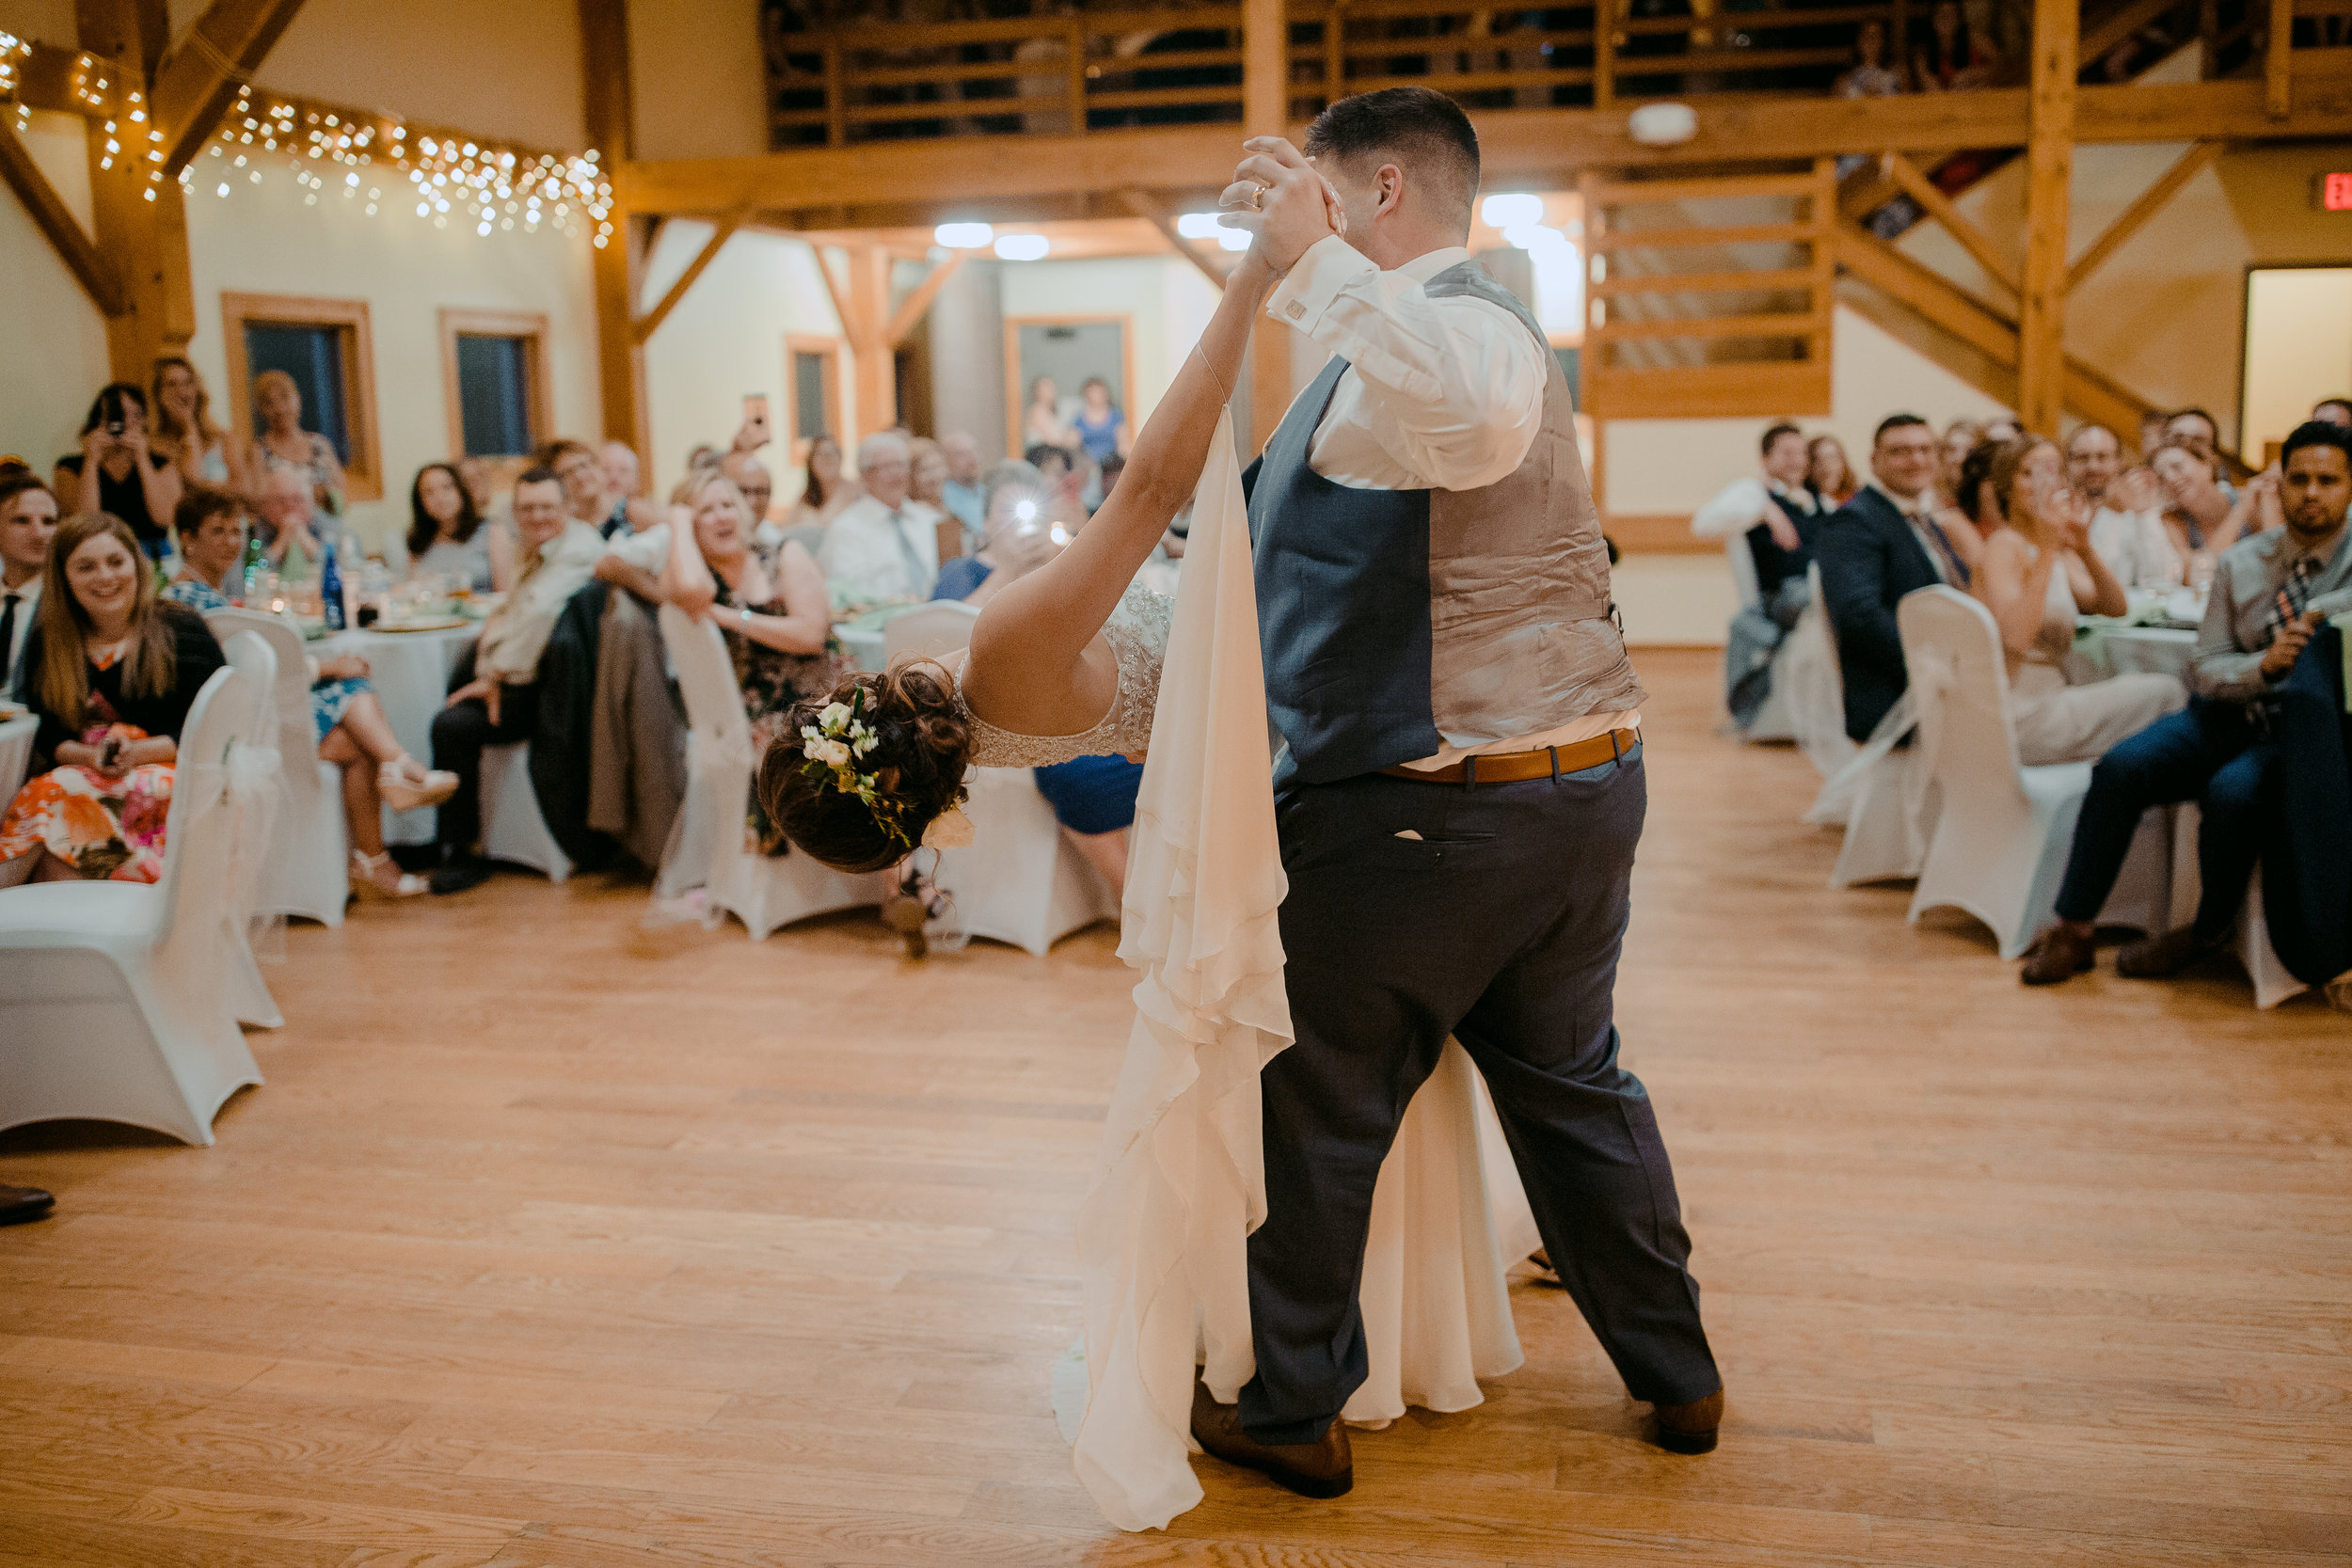 Ballroom Dance Lessons - Learn the basics that you need to tear up ANY dance floor, or to simply feel more confident on your wedding day.$85 for 60 minute private lessons$120 for 90 minute private lessons